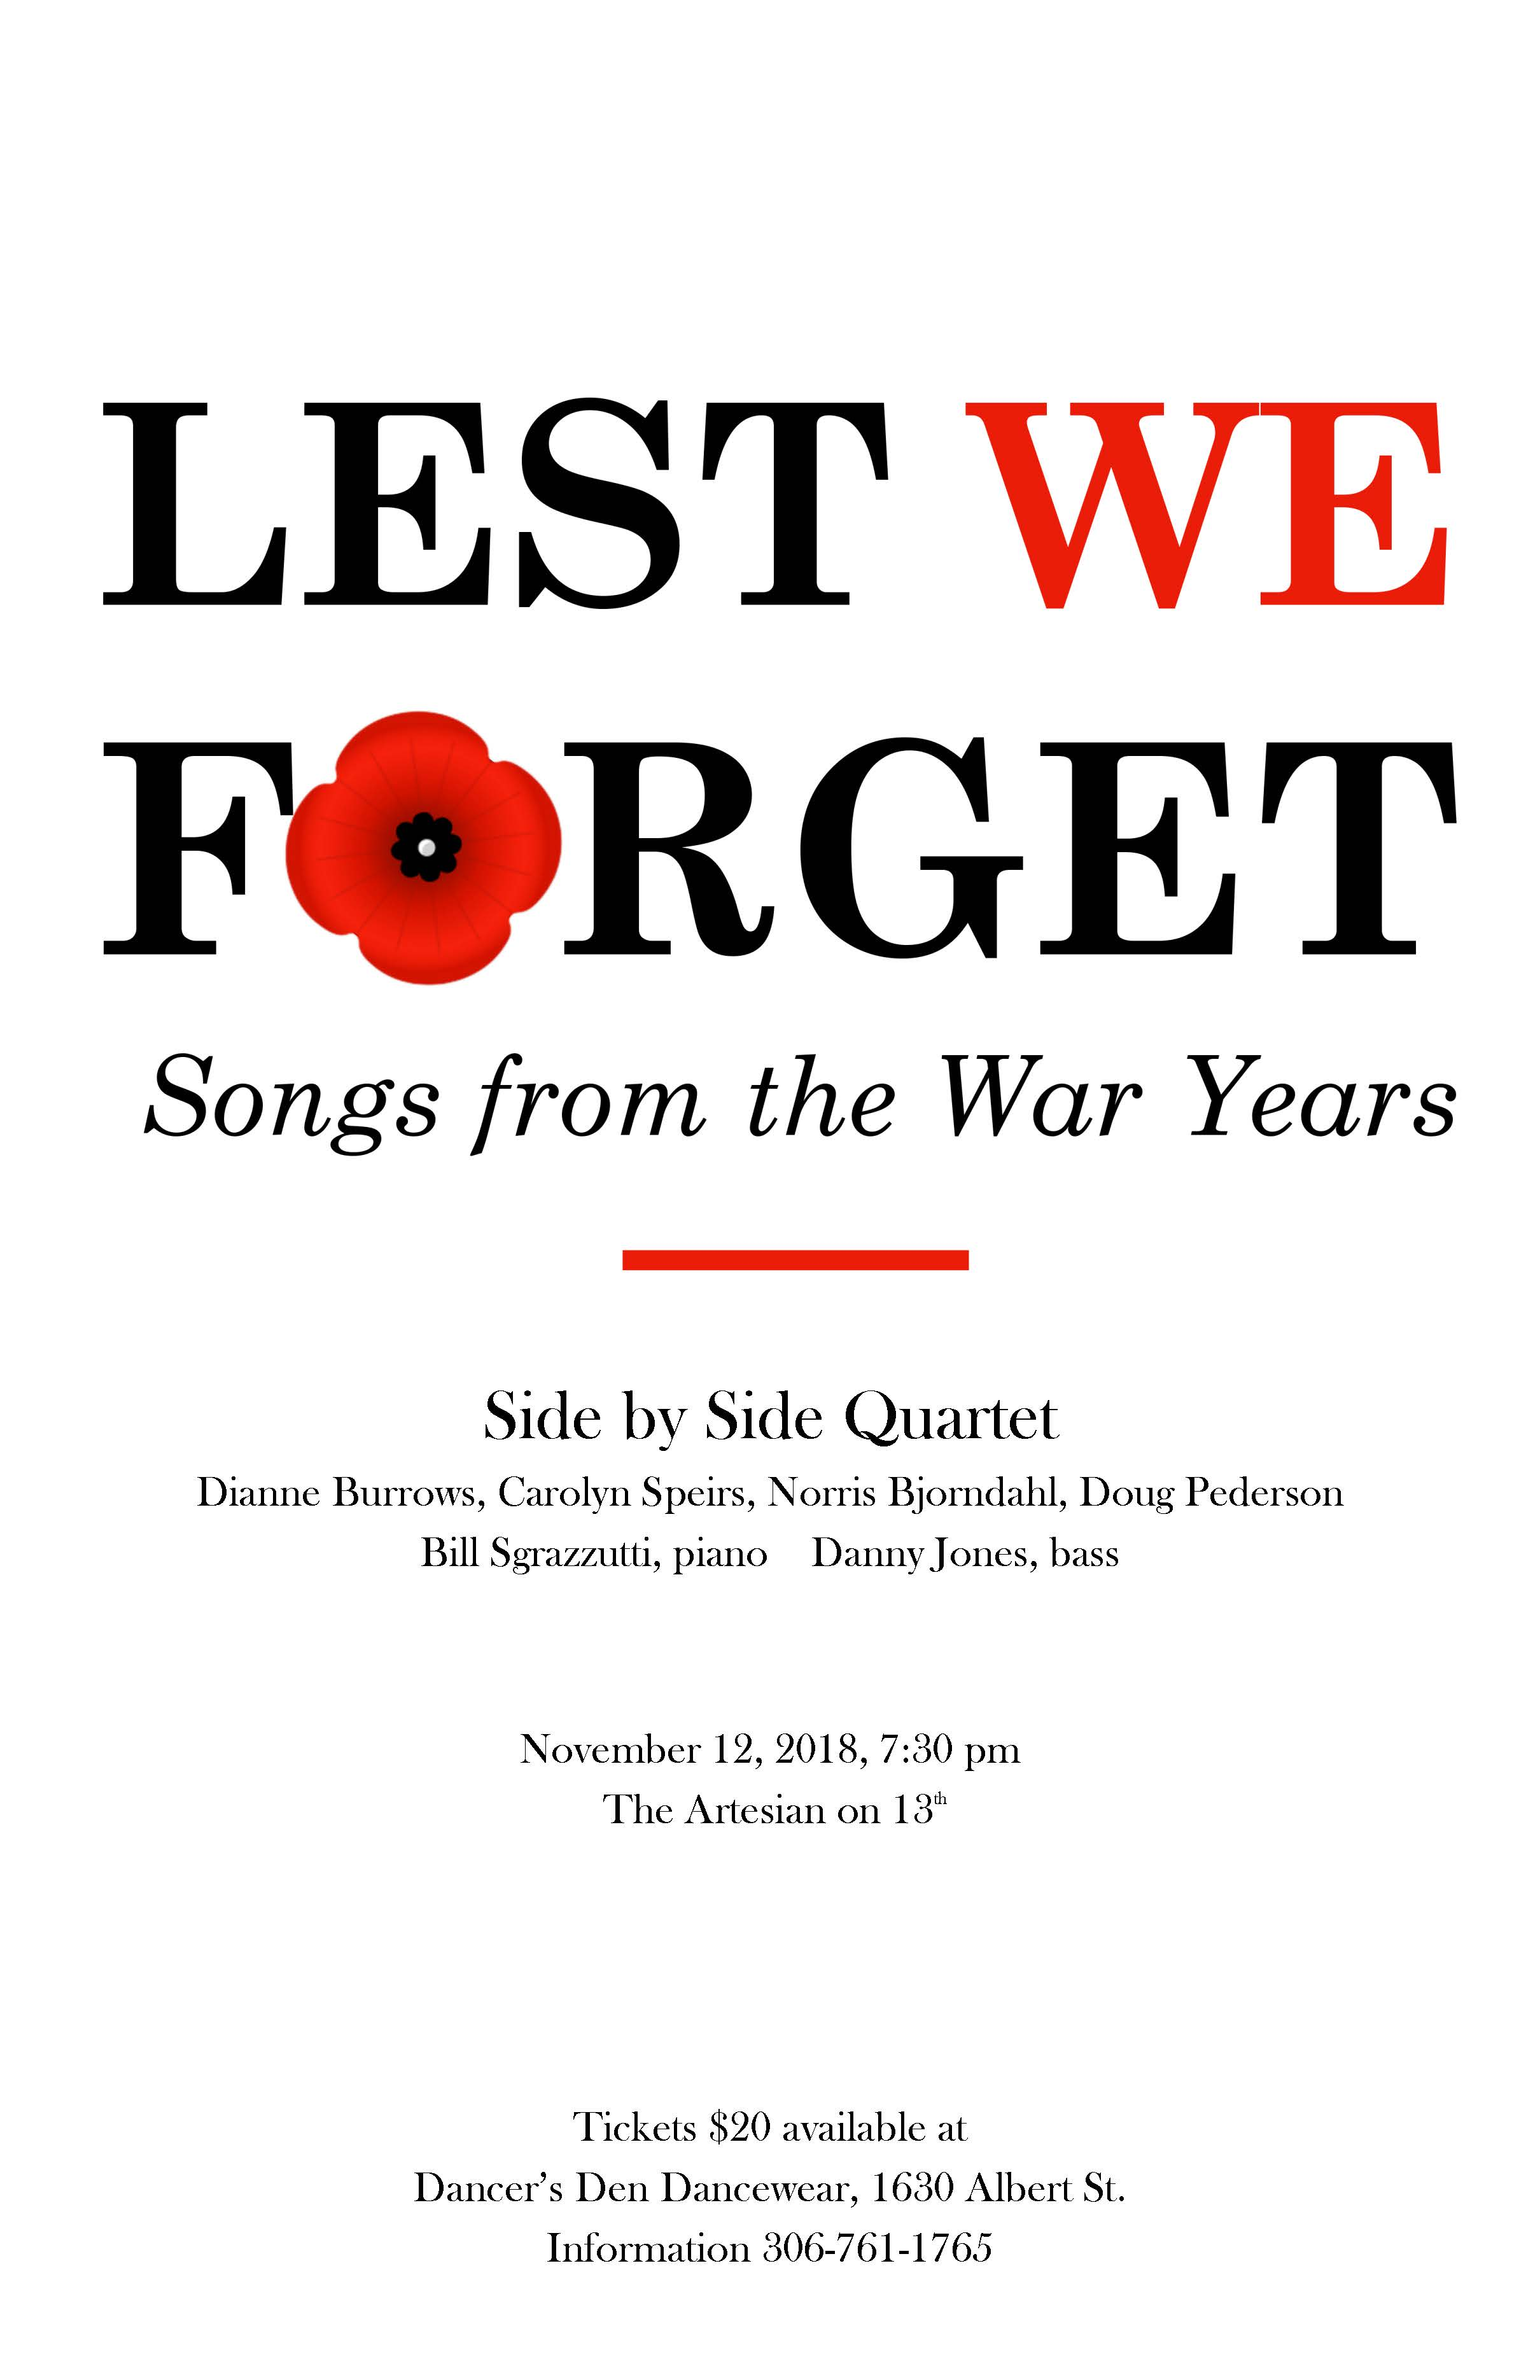 Lest We Forget - Songs From the War Years - November 12, 2018